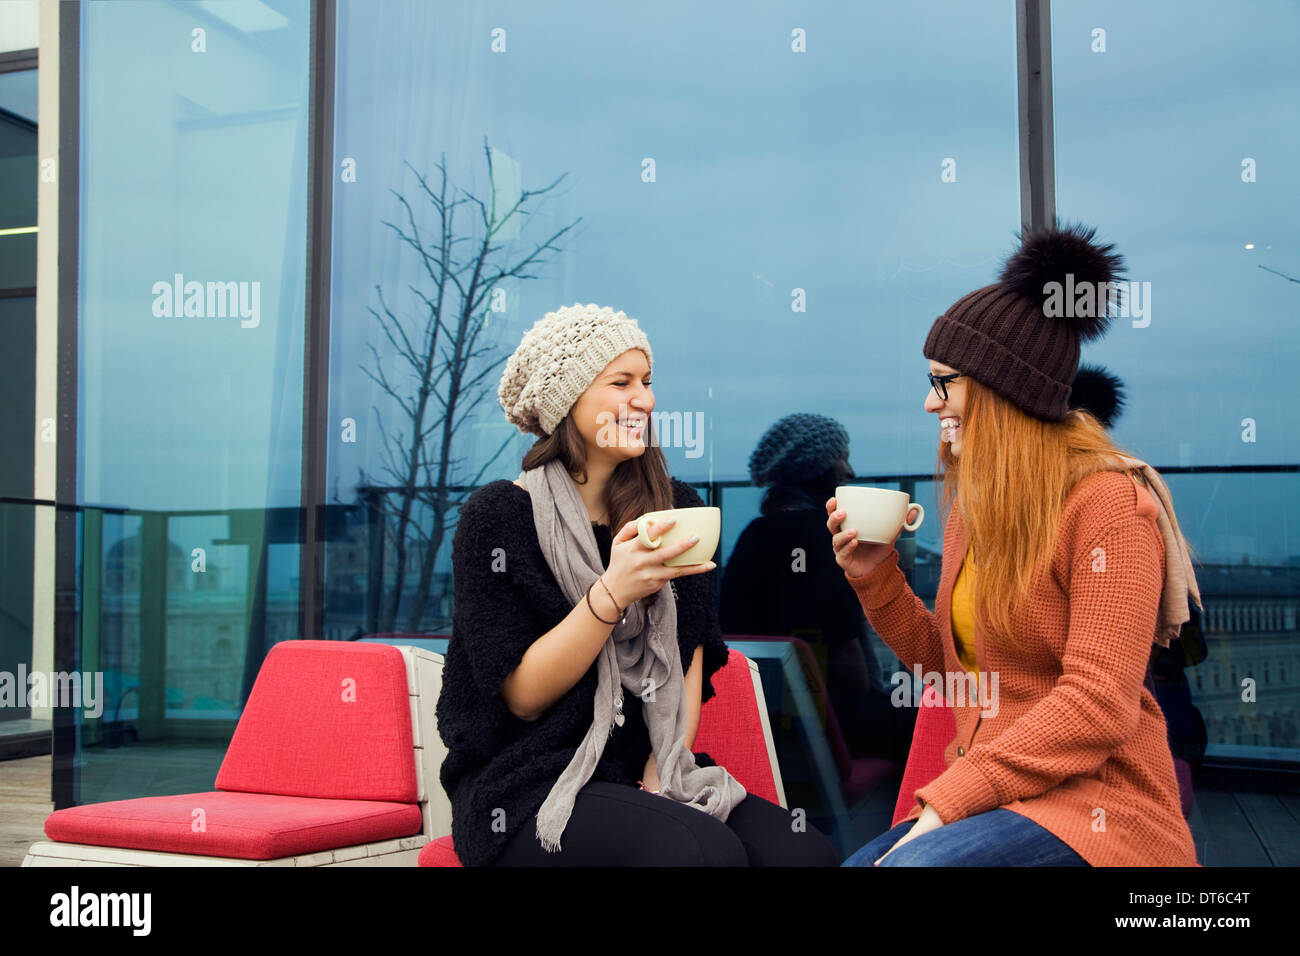 Two young adult women enjoying coffee on rooftop terrace - Stock Image